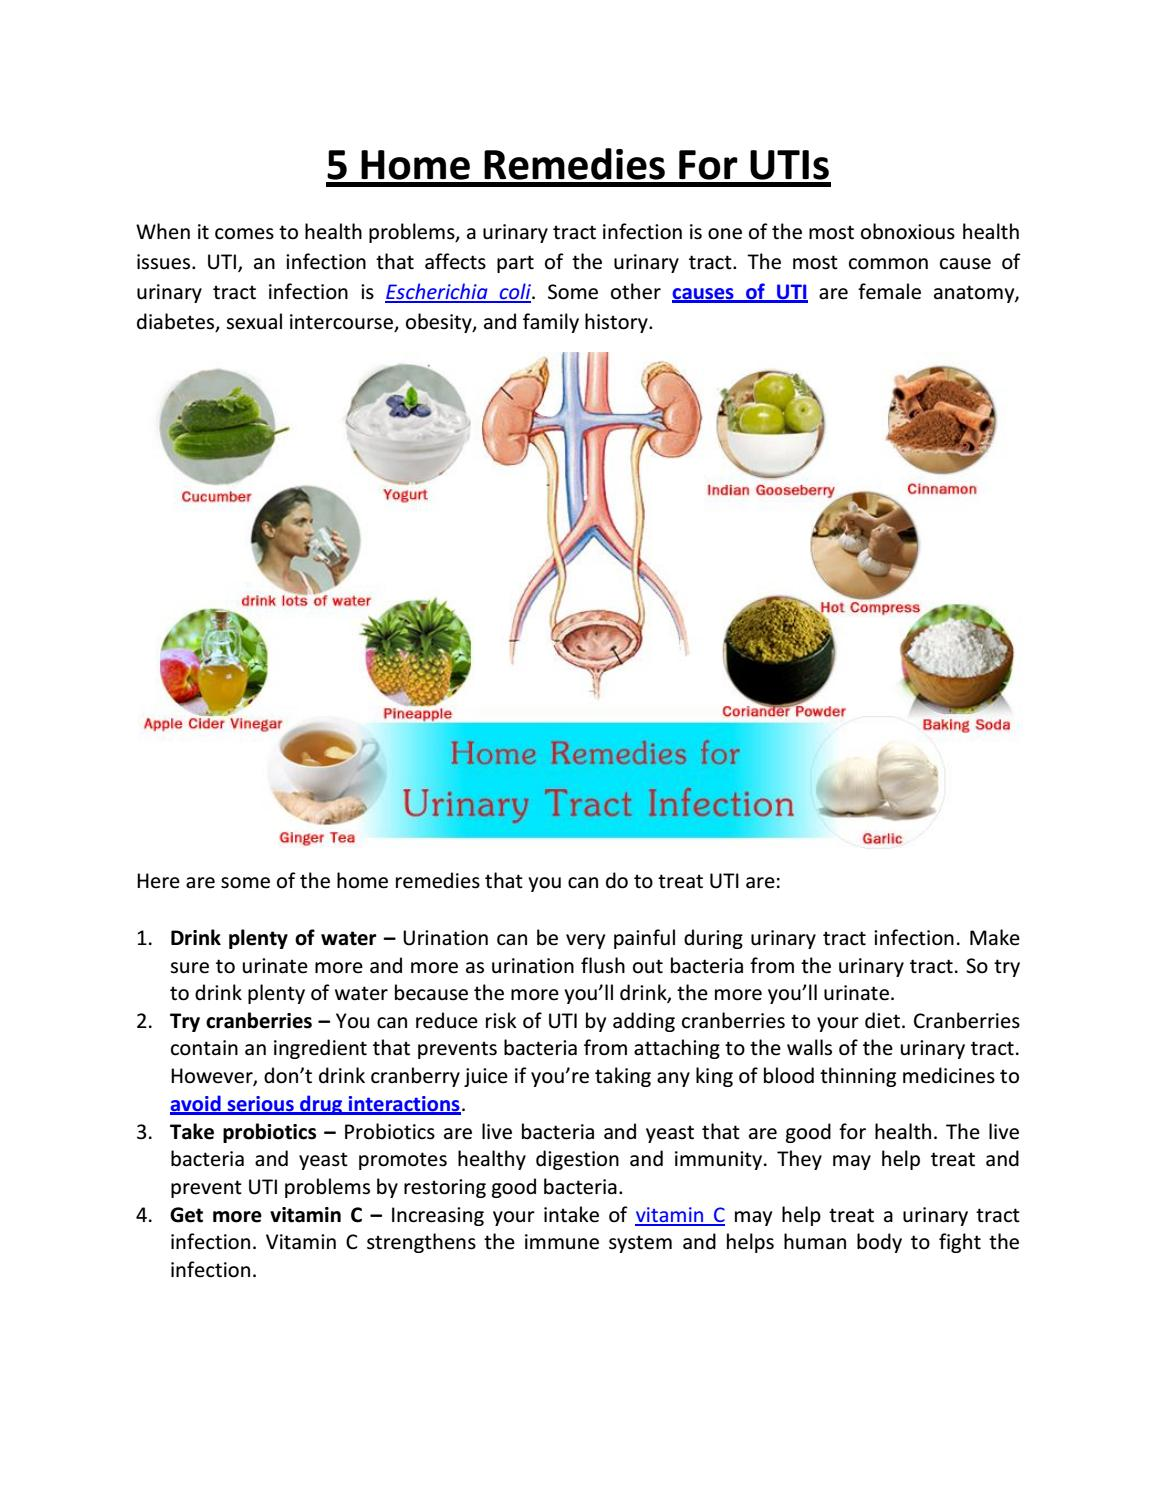 5 Home Remedies For UTIs by rxdiscountcard - issuu